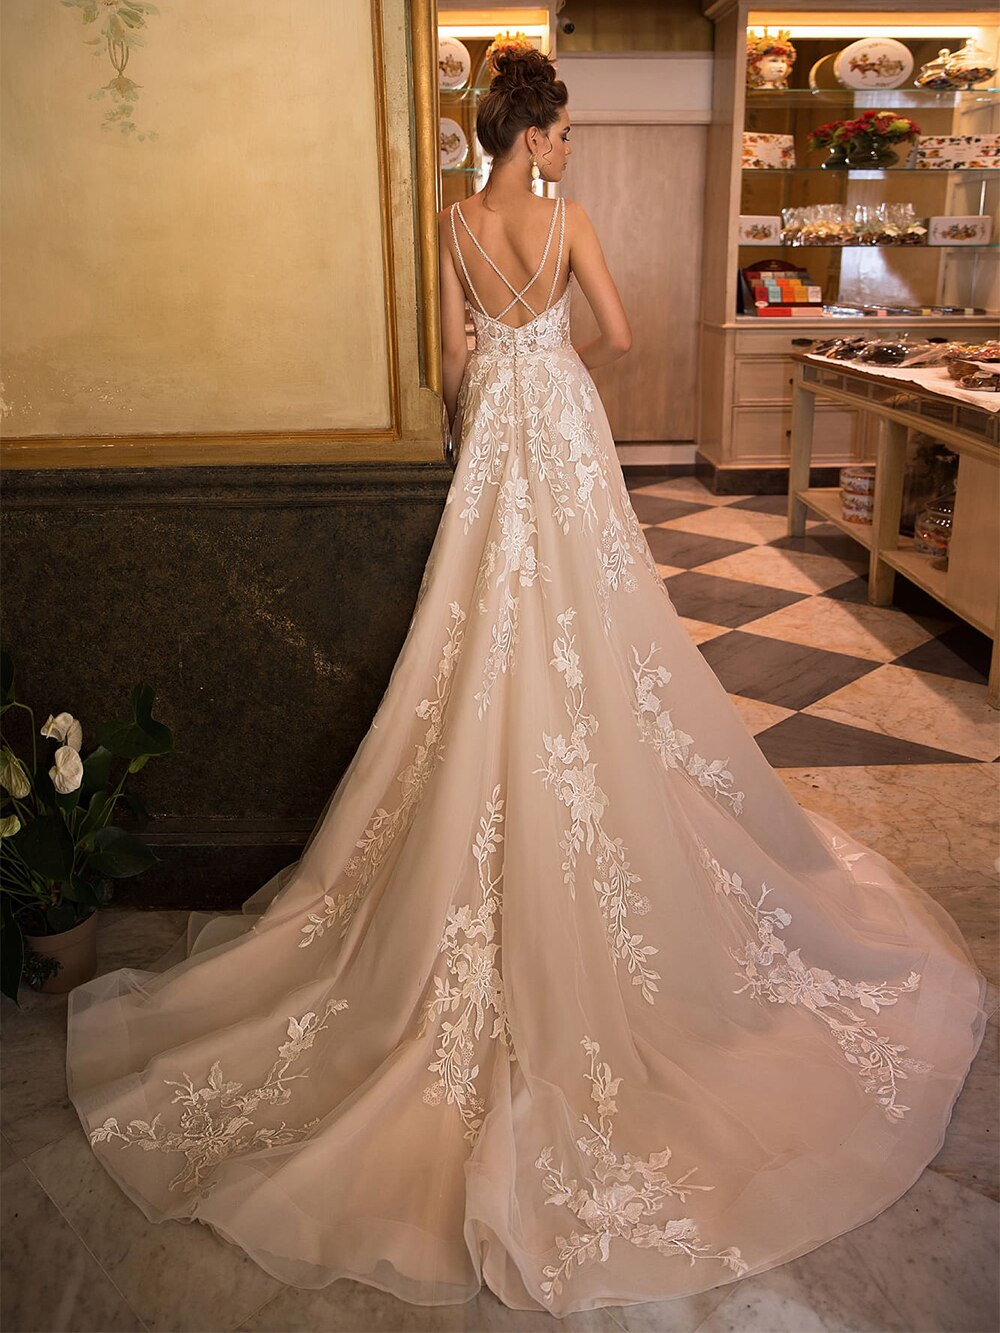 2021 New Sexy Sweetheart Backless Spaghetti Straps A-Line Wedding Dresses Appliqued Beading Crystal Floor Length Bridal Gowns - LiveTrendsX